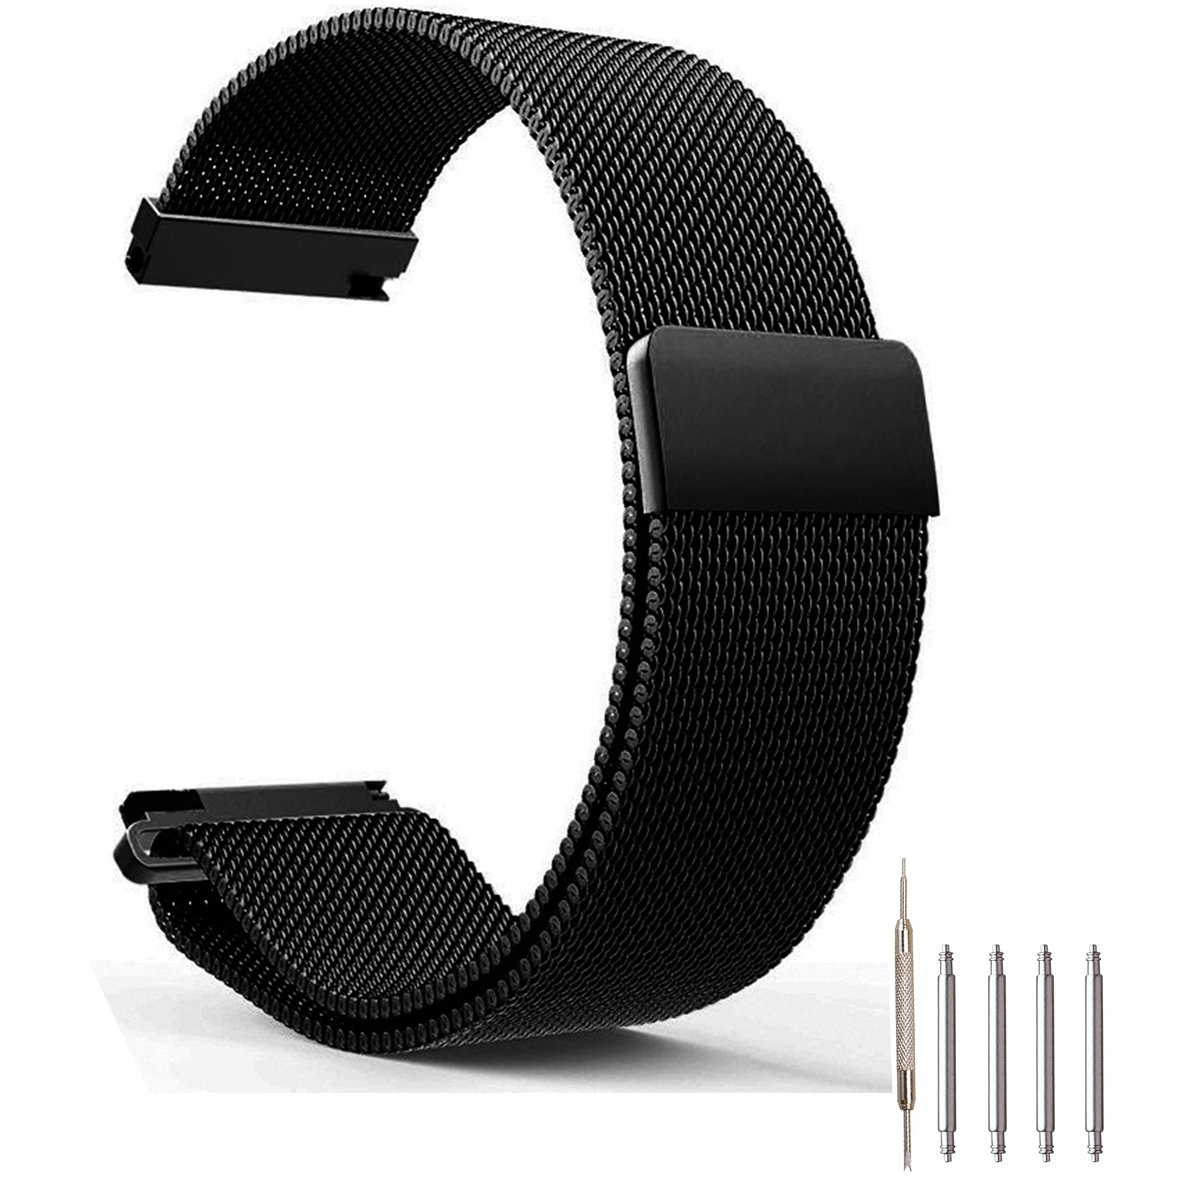 Top Plaza Fully Magnetic Closure Clasp Mesh Loop Milanese Stainless Steel Metal Replacement Band Bracelet Strap for Men's Women's Watch, Black 20MM